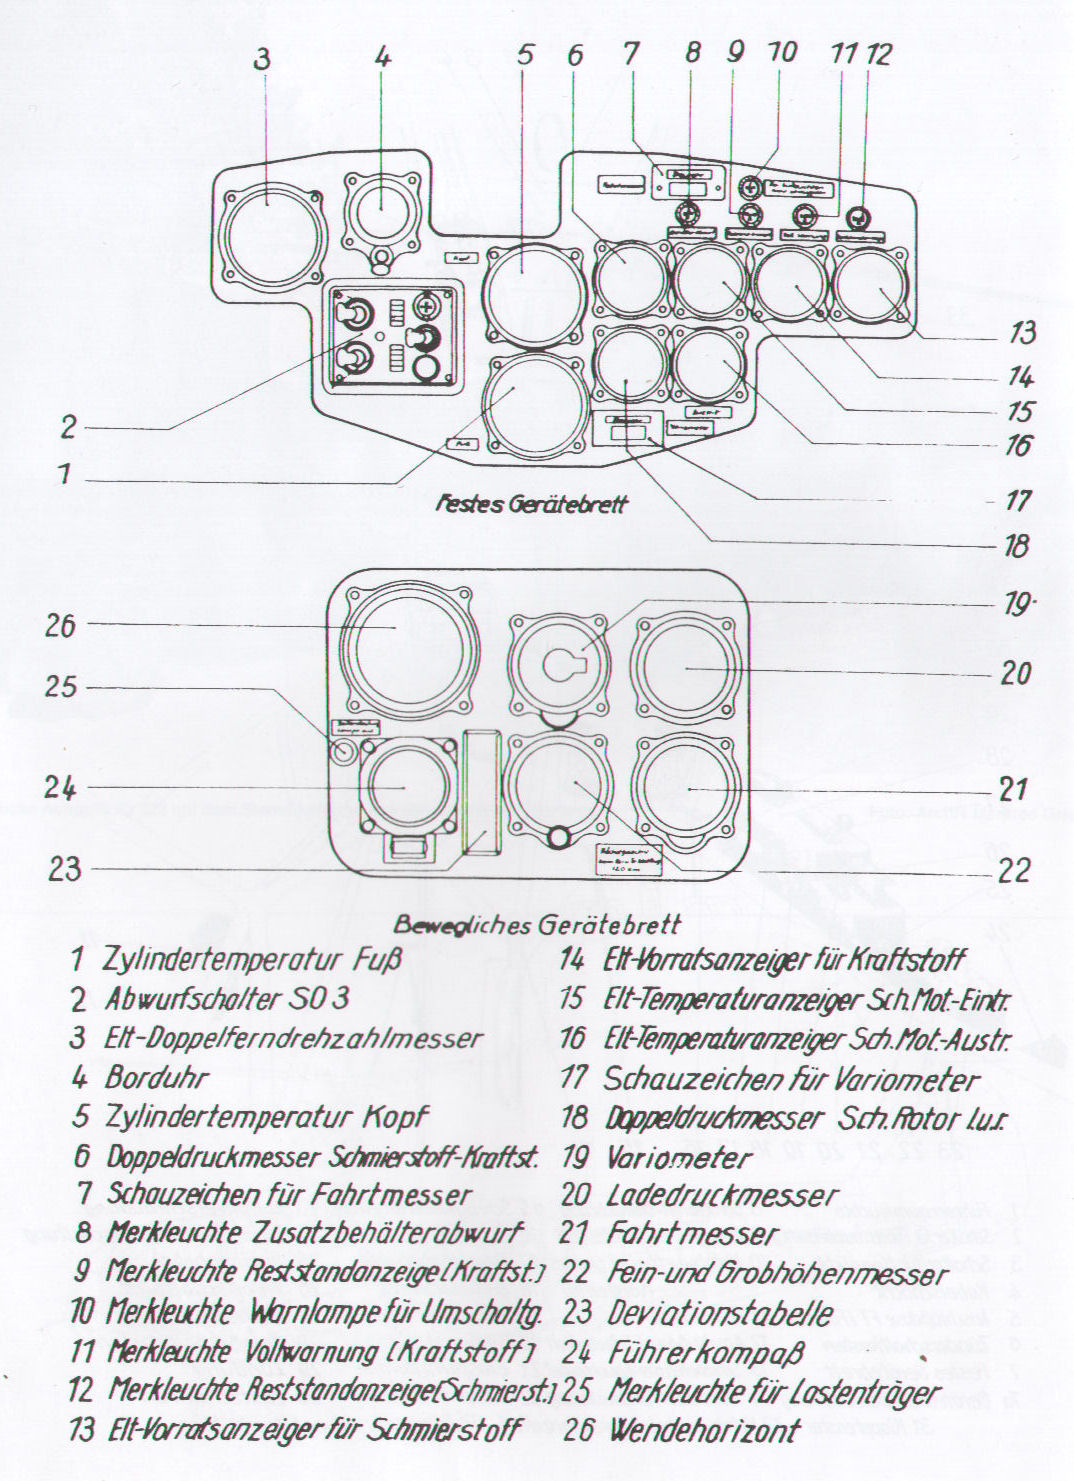 Saturn Sc2 Alternator Location further Transmission For 1999 Saturn Wiring Diagram furthermore 2001 Ford Escort Fuse Box Diagram moreover Vespa Vbb Wiring Diagram additionally Saturn Sl2 Fuse Box Diagram. on 1996 saturn sc1 fuse box diagram